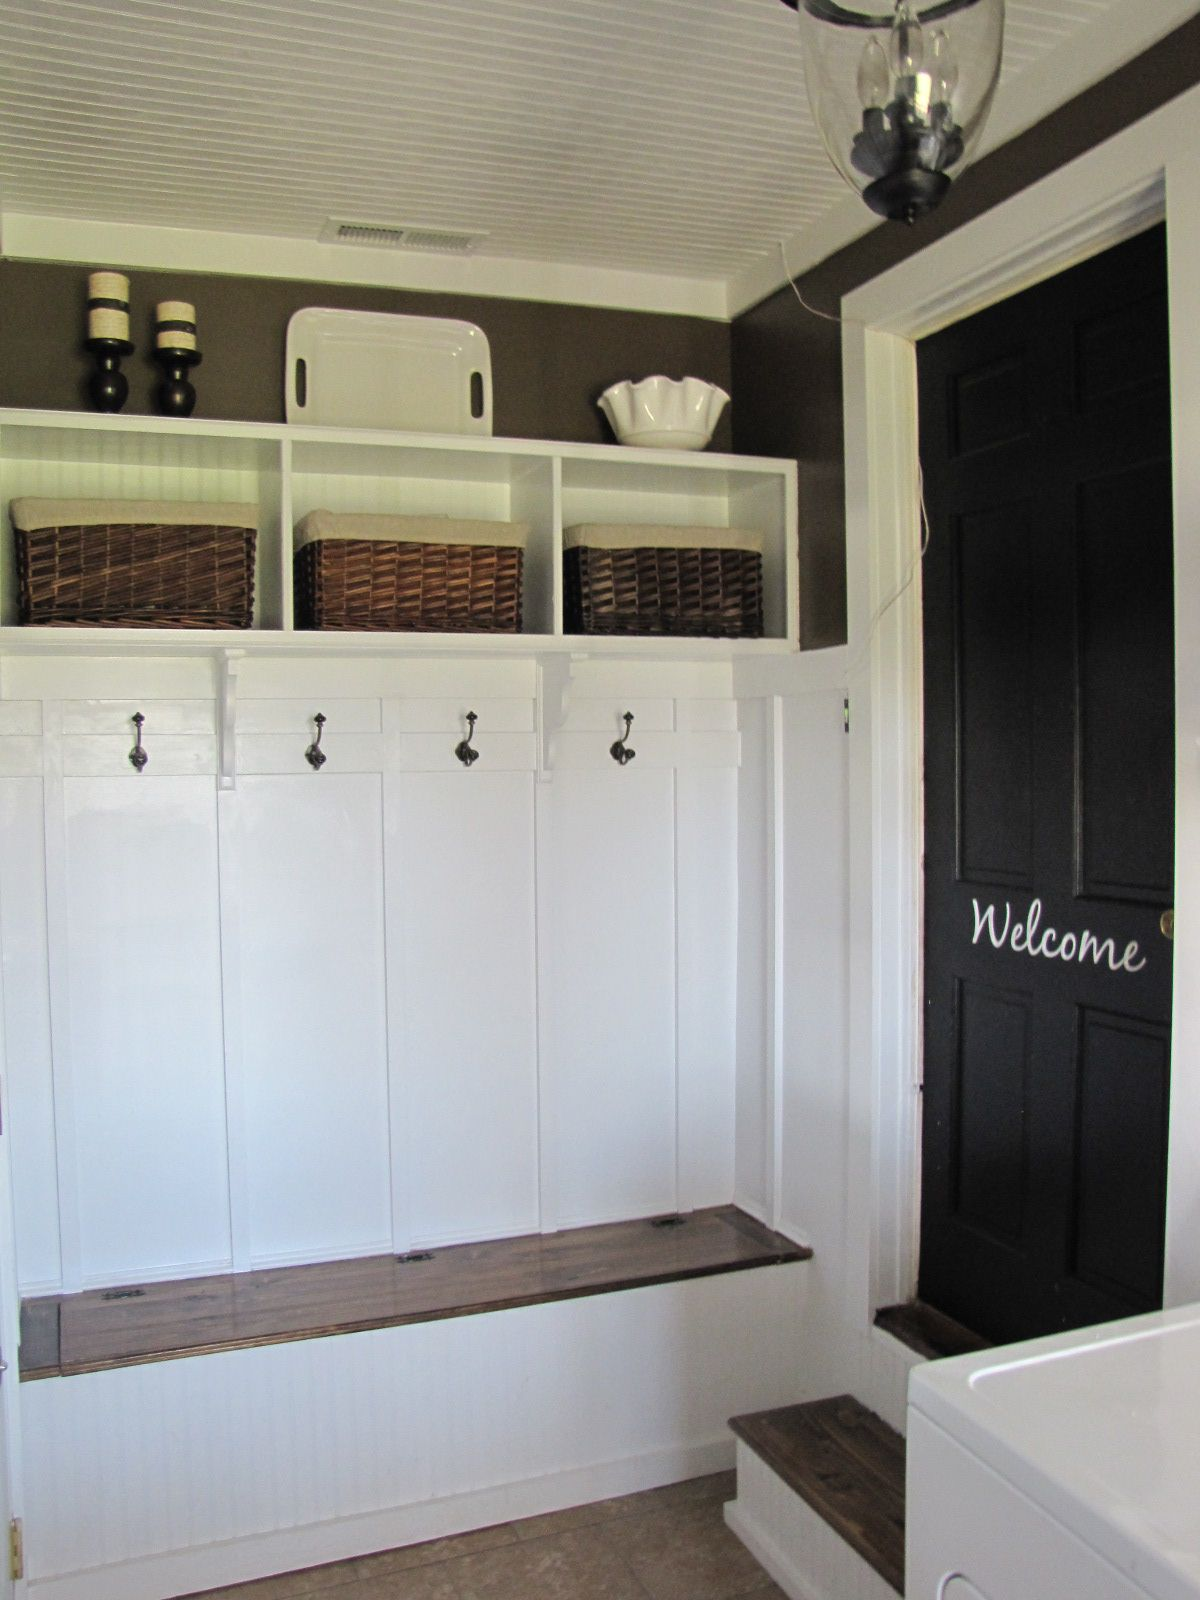 Ordinaire A Laundry/Mudroom Makeover Re Visited   Beneath My Heart. Garage DoorsGarage  MudroomsGarage EntrywayEntryway IdeasGarage ...